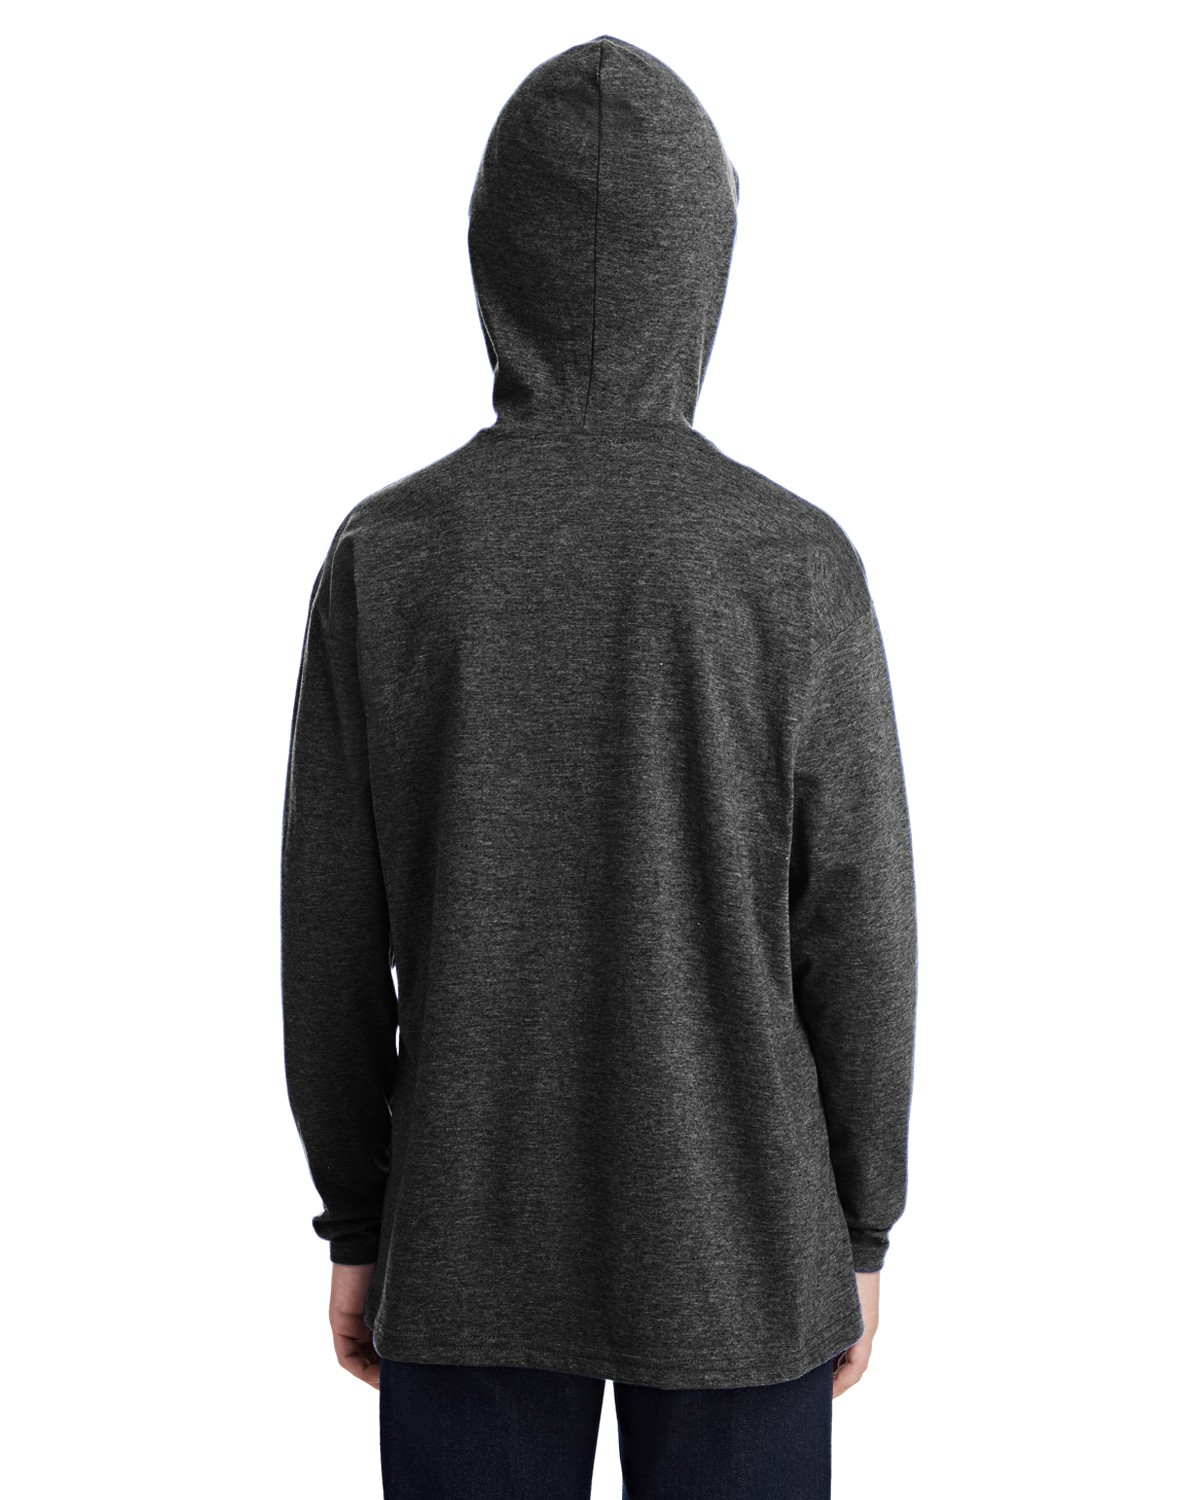 987B Anvil HEATHER DK GREY